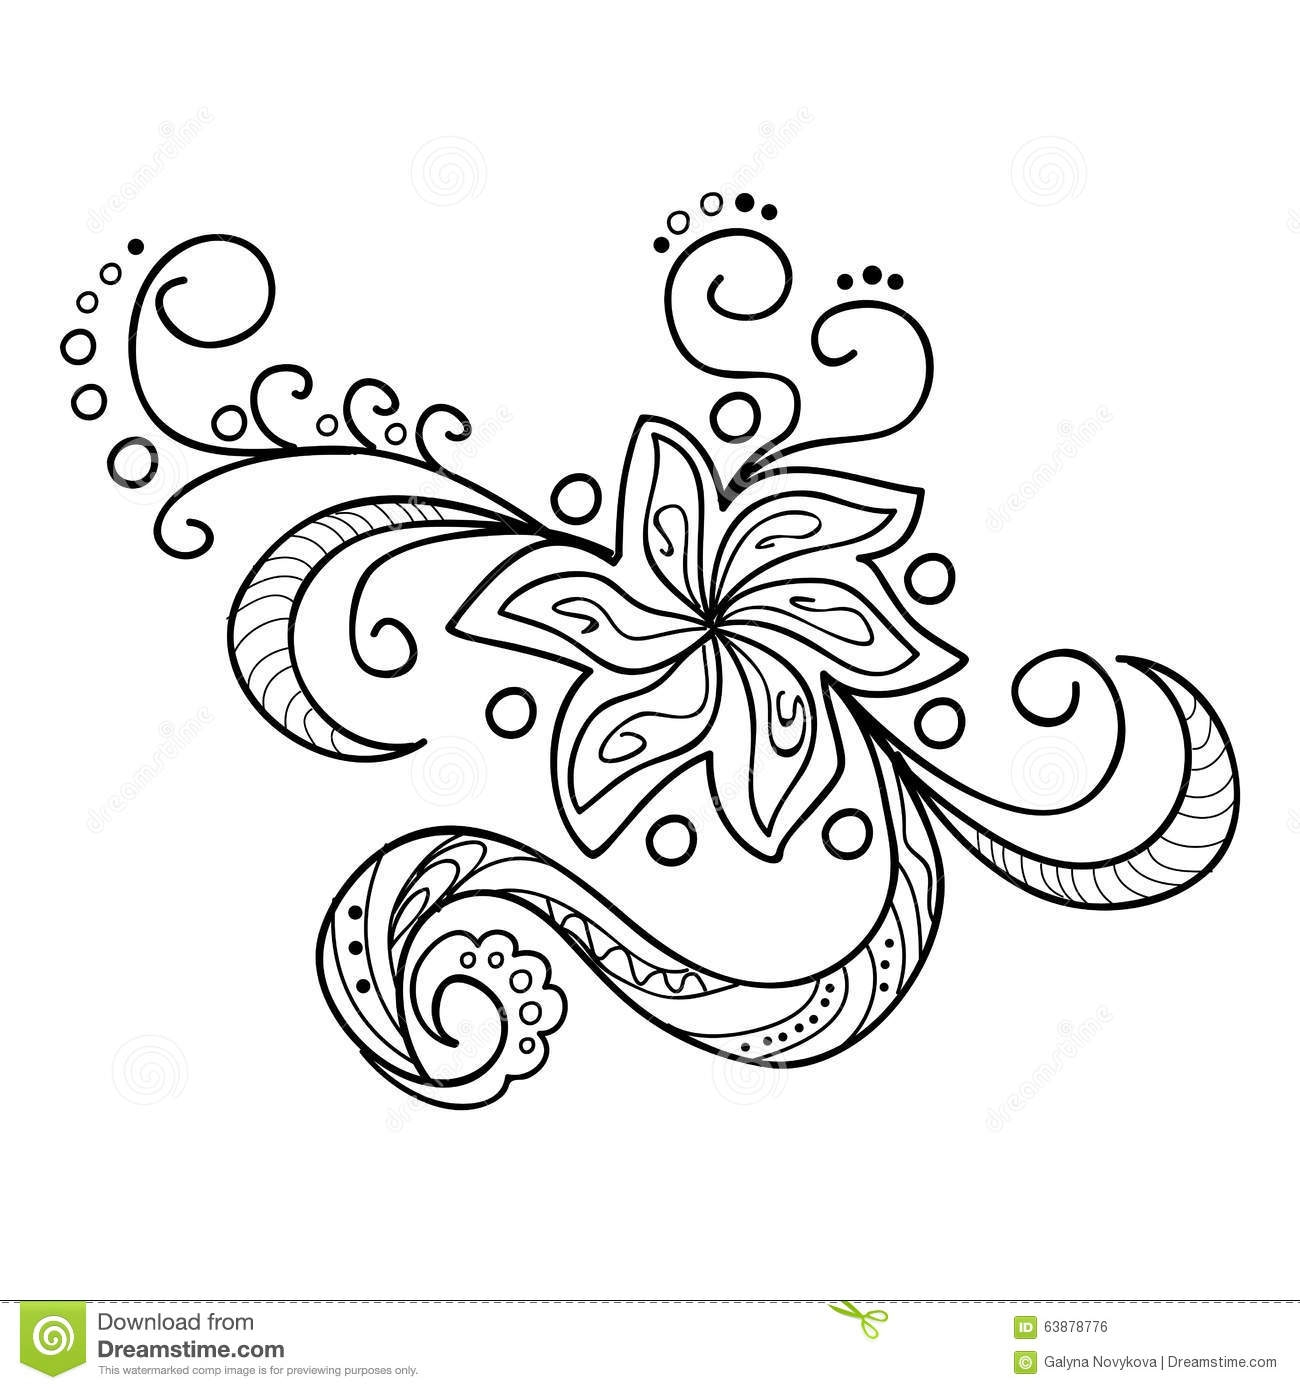 henna coloring pages - stock illustration zentangle flowers hand drawn decorated image flower style henna paisley mehndi image coloring page tatoo vector image